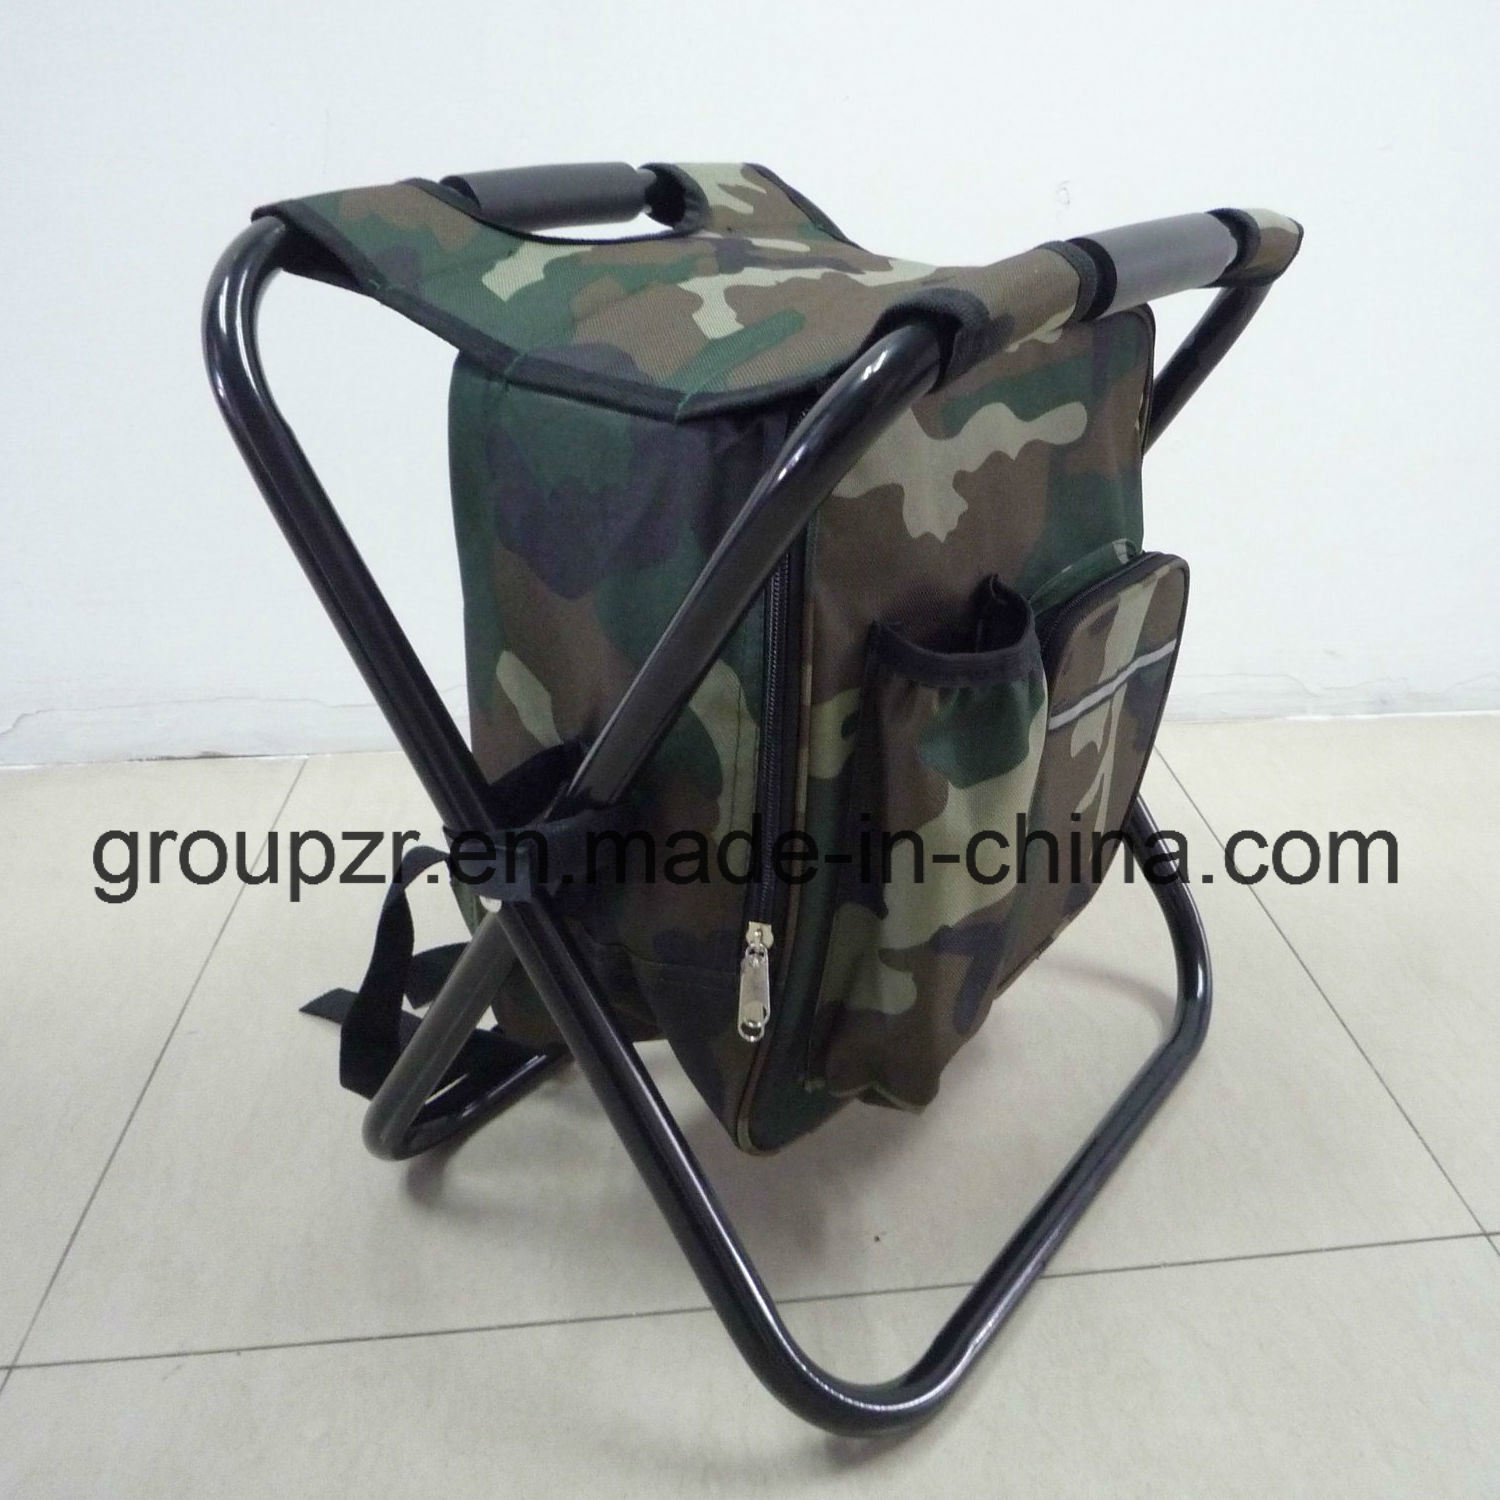 Folding Chair with Cooler Bag Camping Chair for Fishing